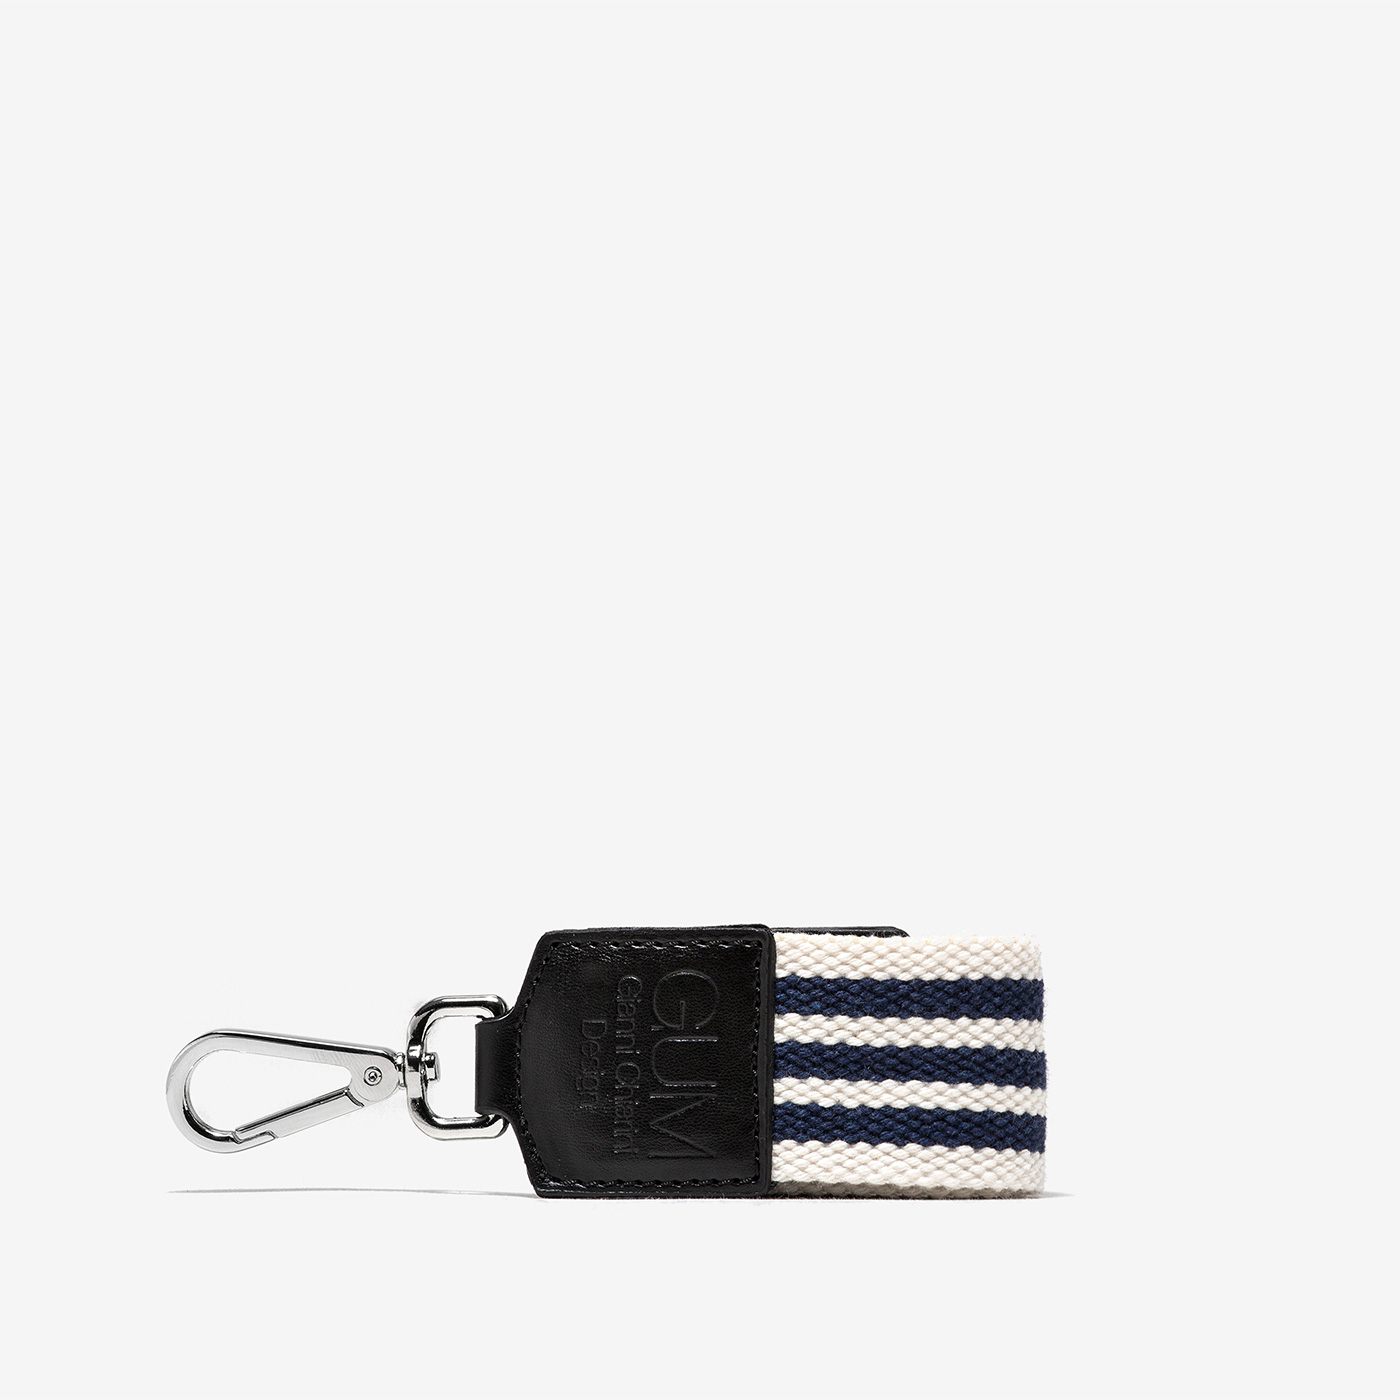 GUM: FIXED-SIZE SHOULDER STRAP WITH STRIPES